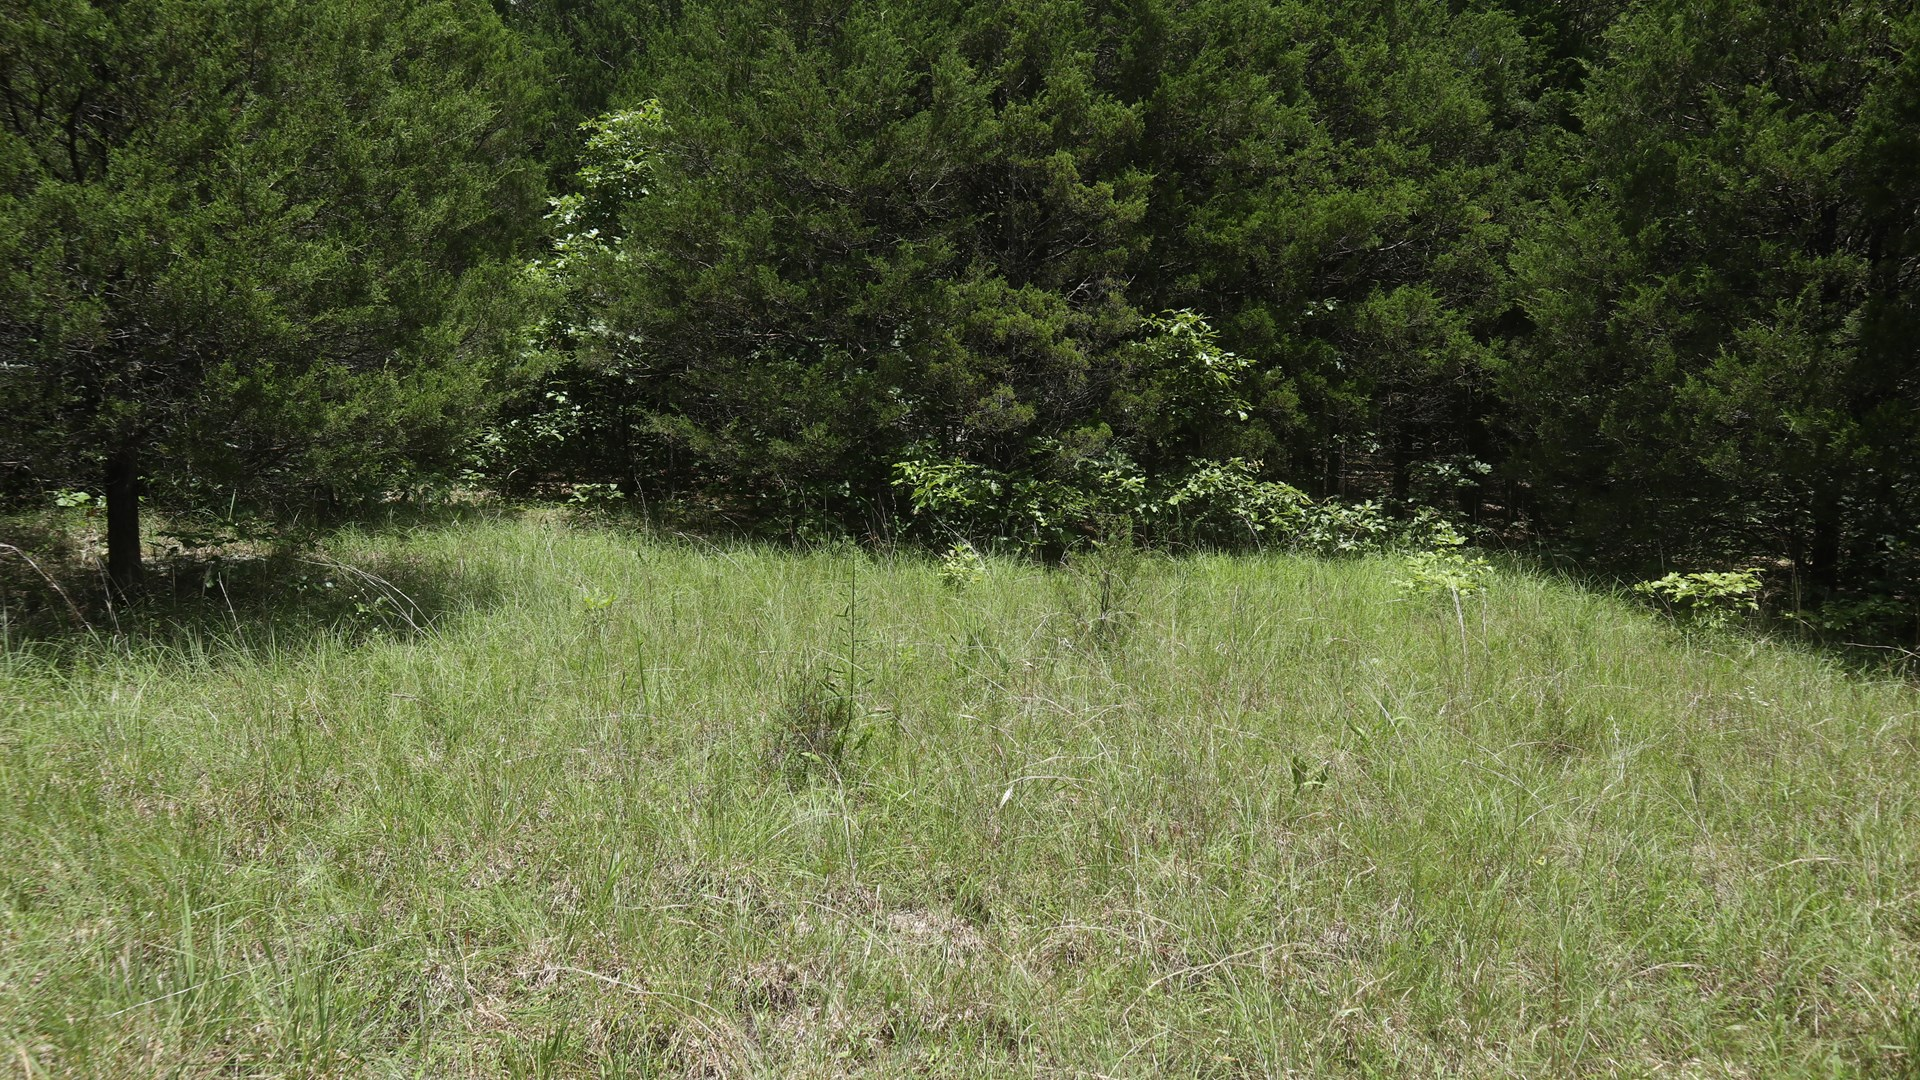 VACANT WOODED LAND FOR SALE IN NORTH ARKANSAS